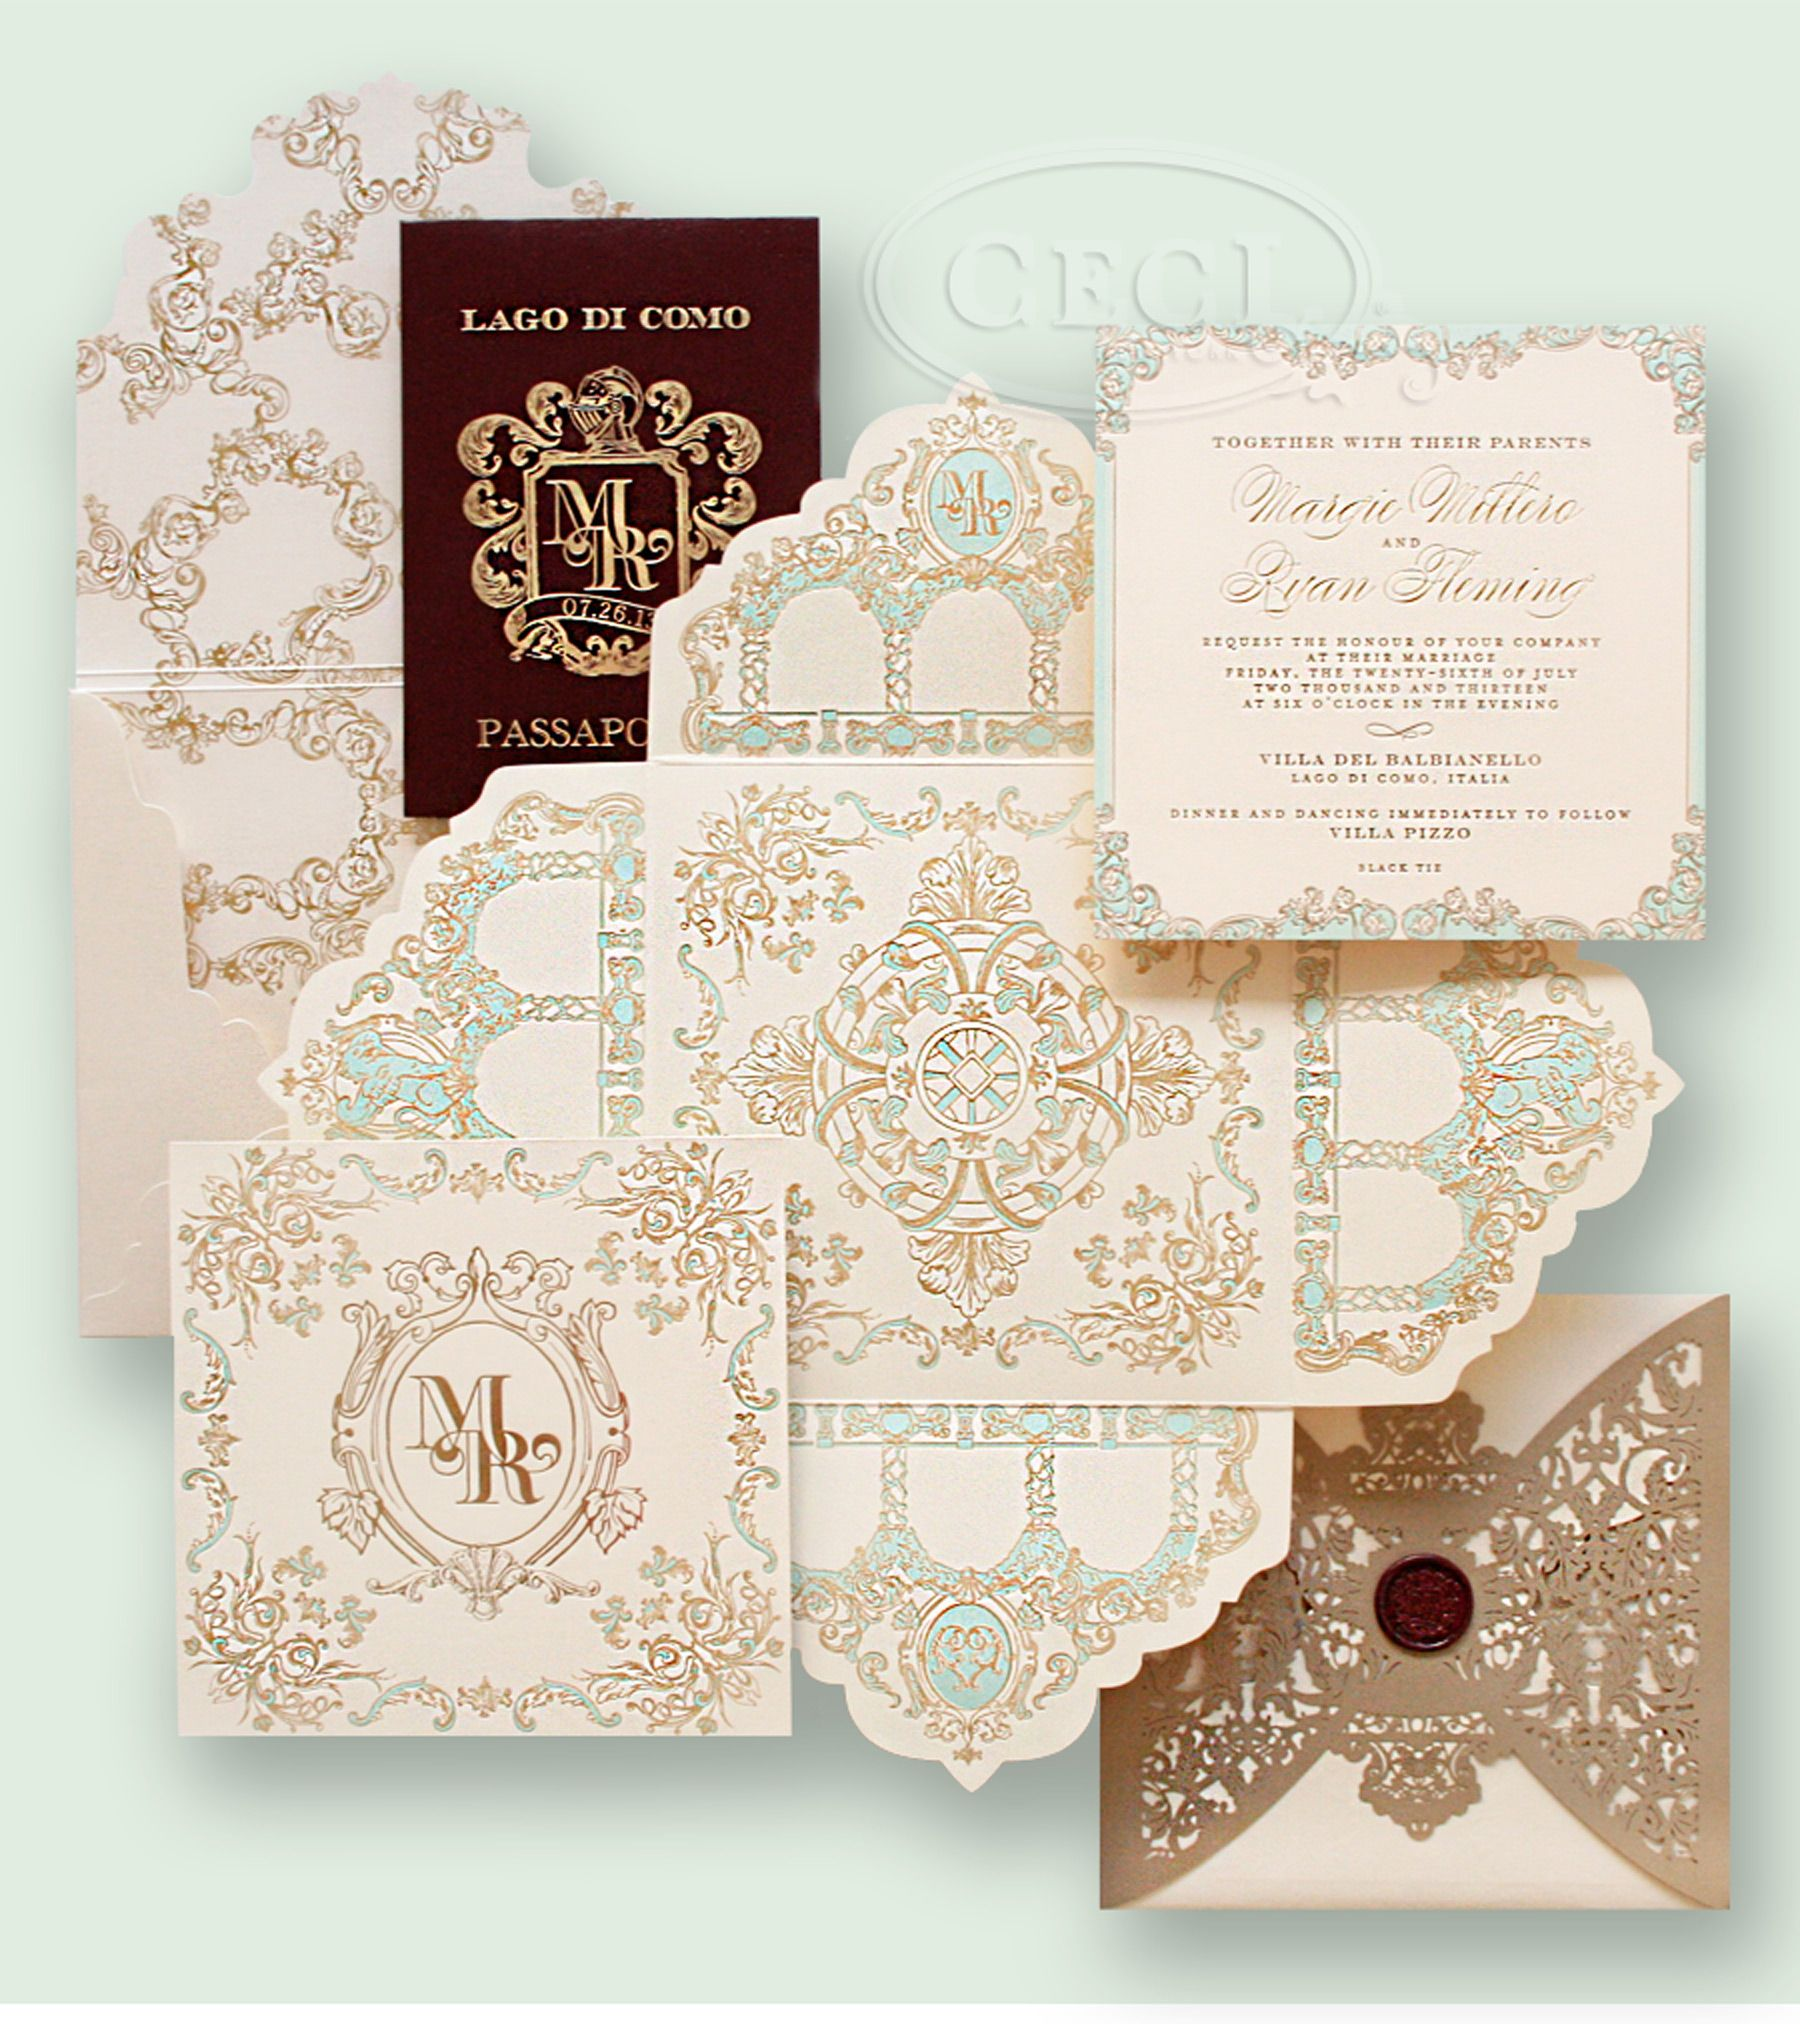 luxury wedding invitations by ceci new york luxurious lake como italy wedding